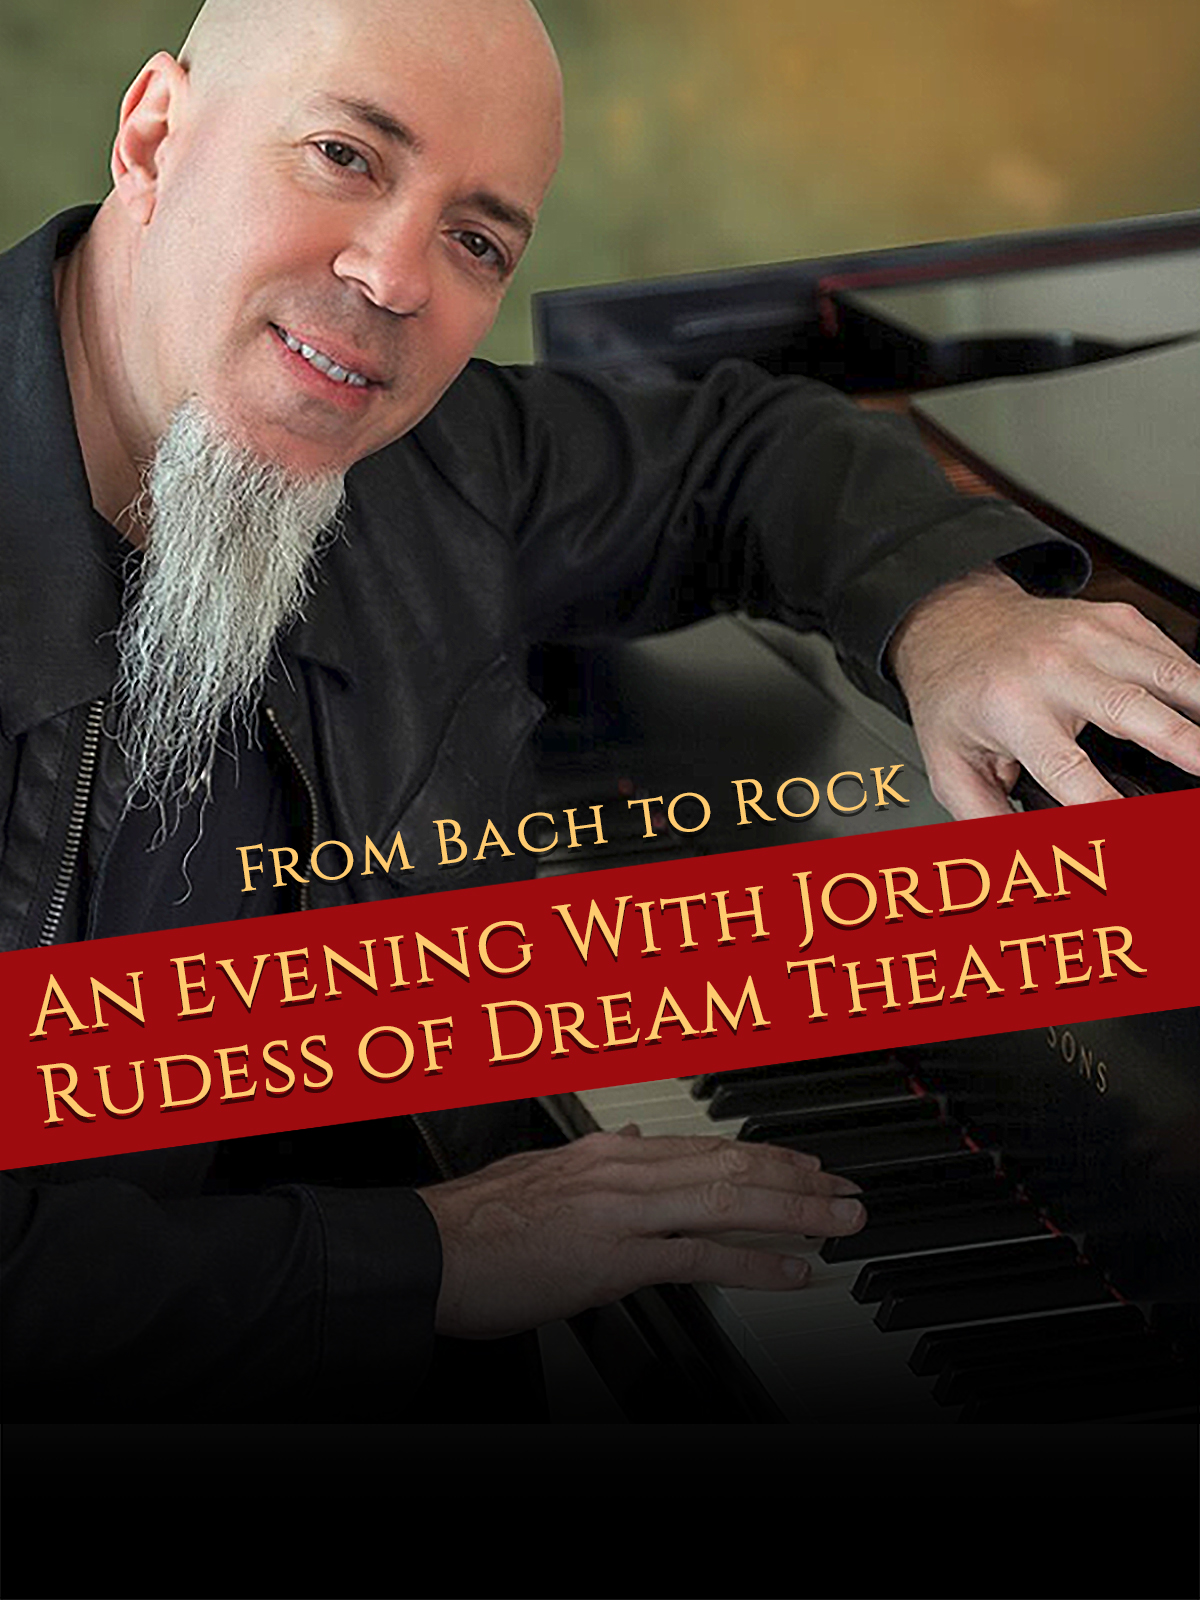 JORDAN RUDESS ANNOUNCES SOLO TOUR, JOHN PETRUCCI HEADS TO EUROPE WITH G3